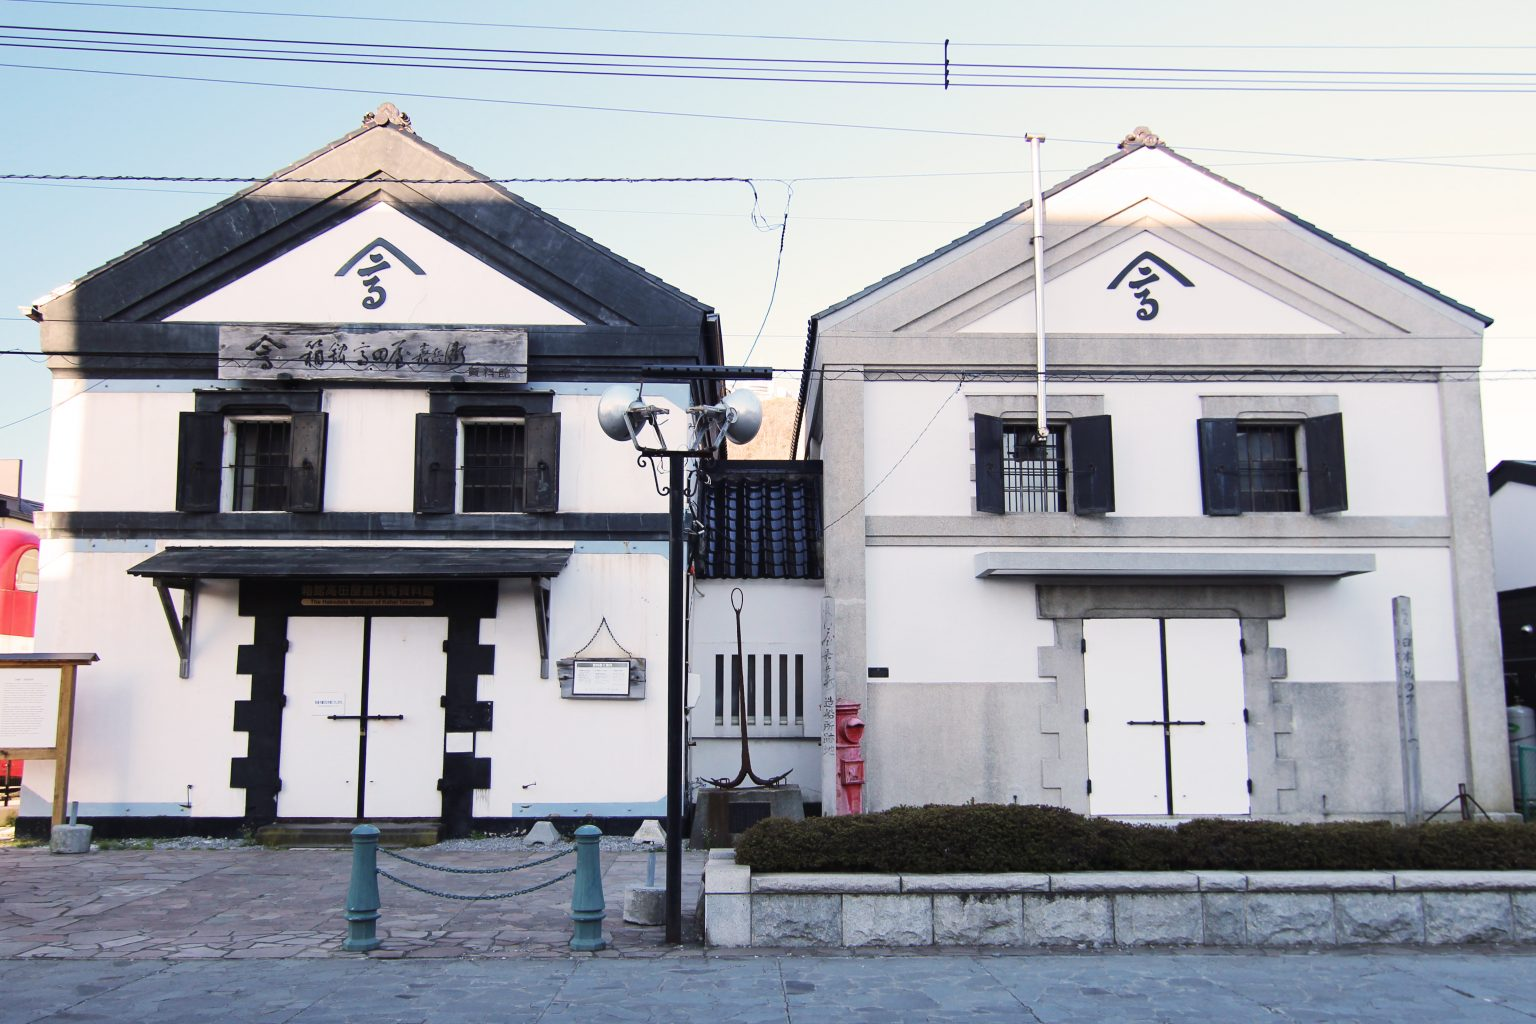 streets old houses Hakodate & Toya - 6-Day South Hokkaido Itinerary, hakodate itinerary, things to do in hakodate, what to do in hakodate, hakodate must eat